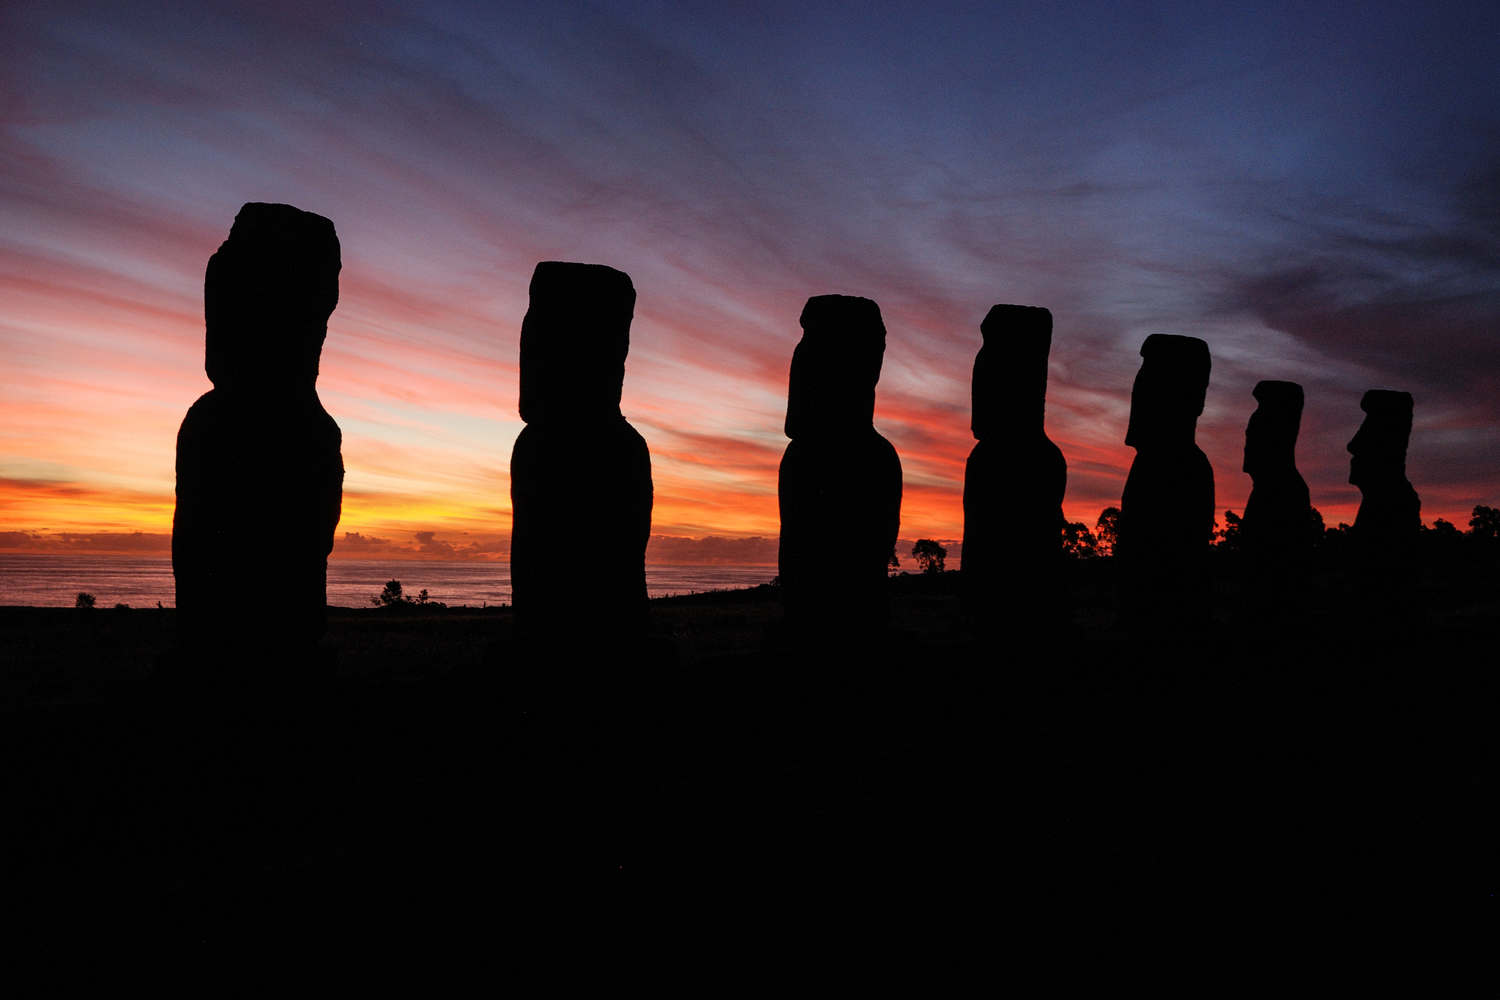 chile-easter-island-moia-statues-at-sunset